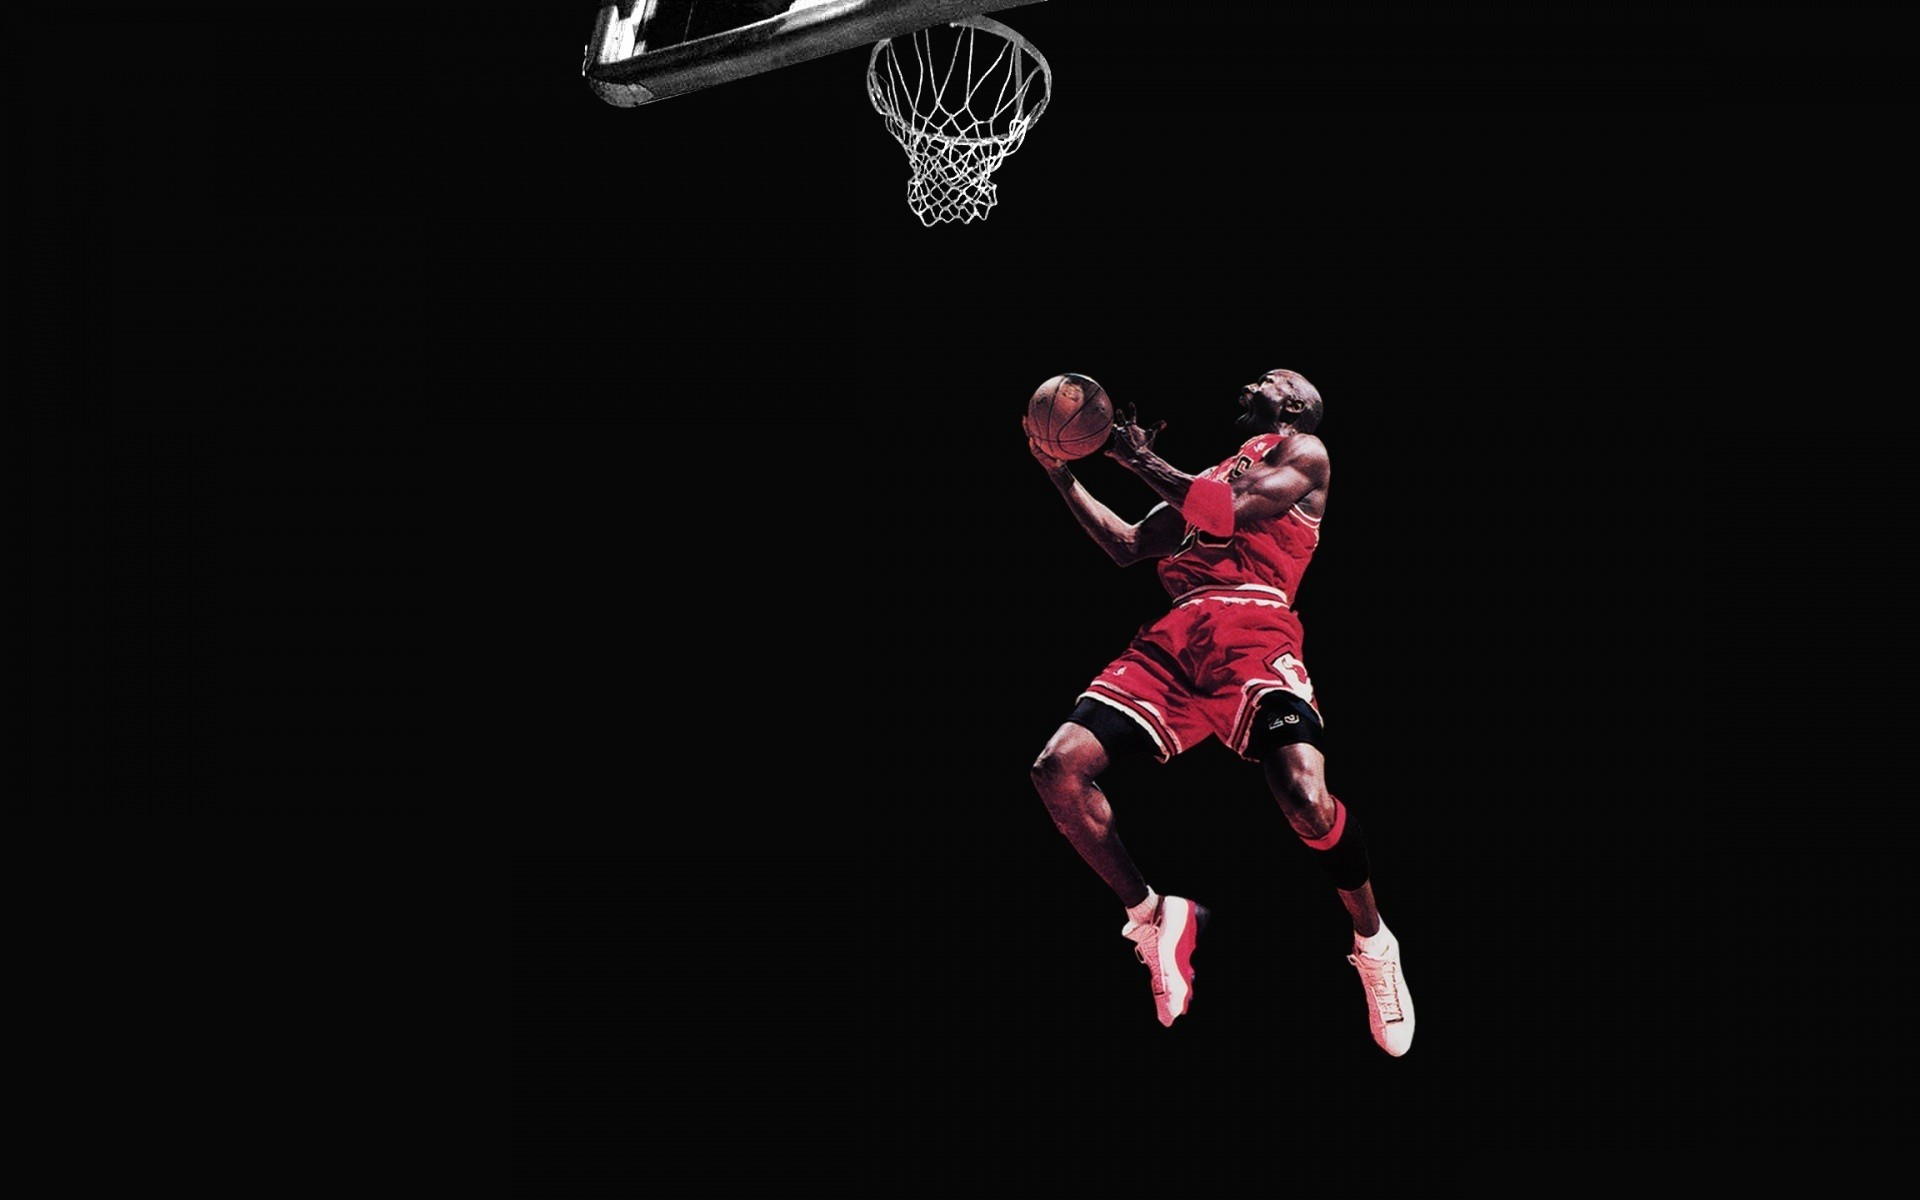 1920x1200 Michael Jordan Chicago Bulls Basketball Jump Black wallpaper .